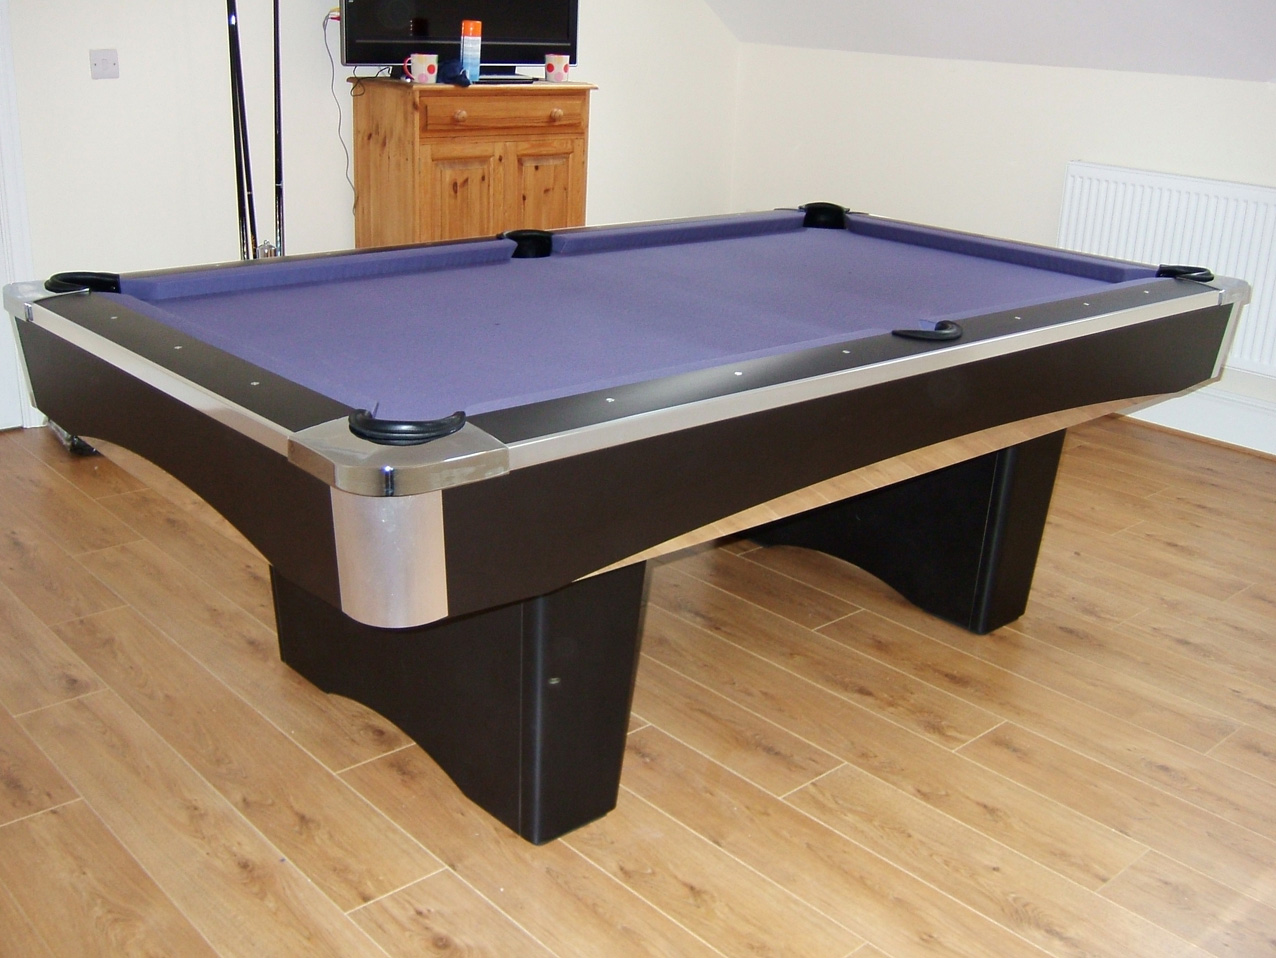 Olhausen Champion Pro III Pool Table American Pool Table - American pool table company